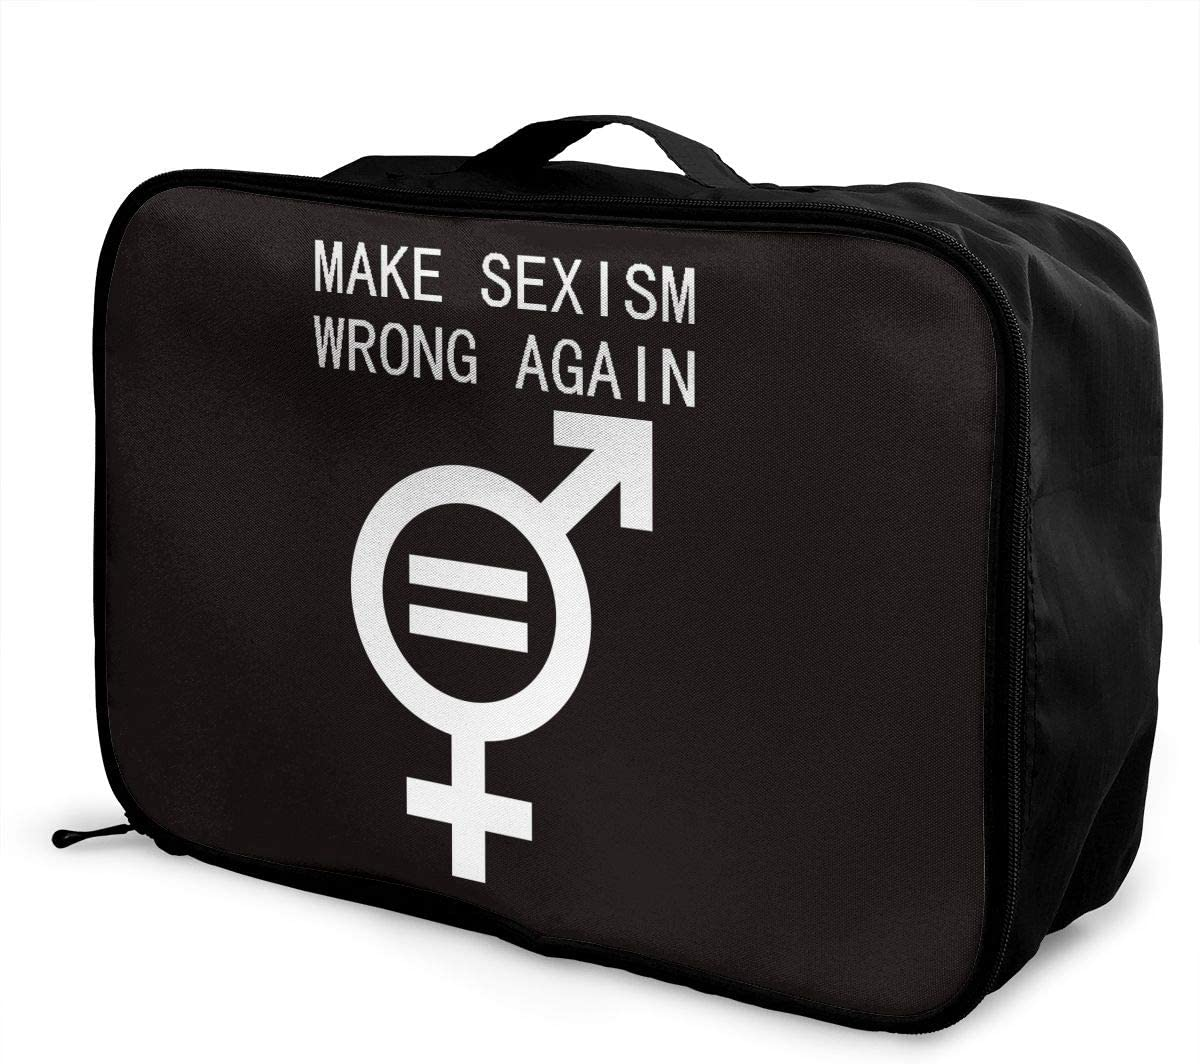 Make Sexism Wrong Again Carry Lightweight Large Capacity Portable Hiking Luggage Trolley Bag